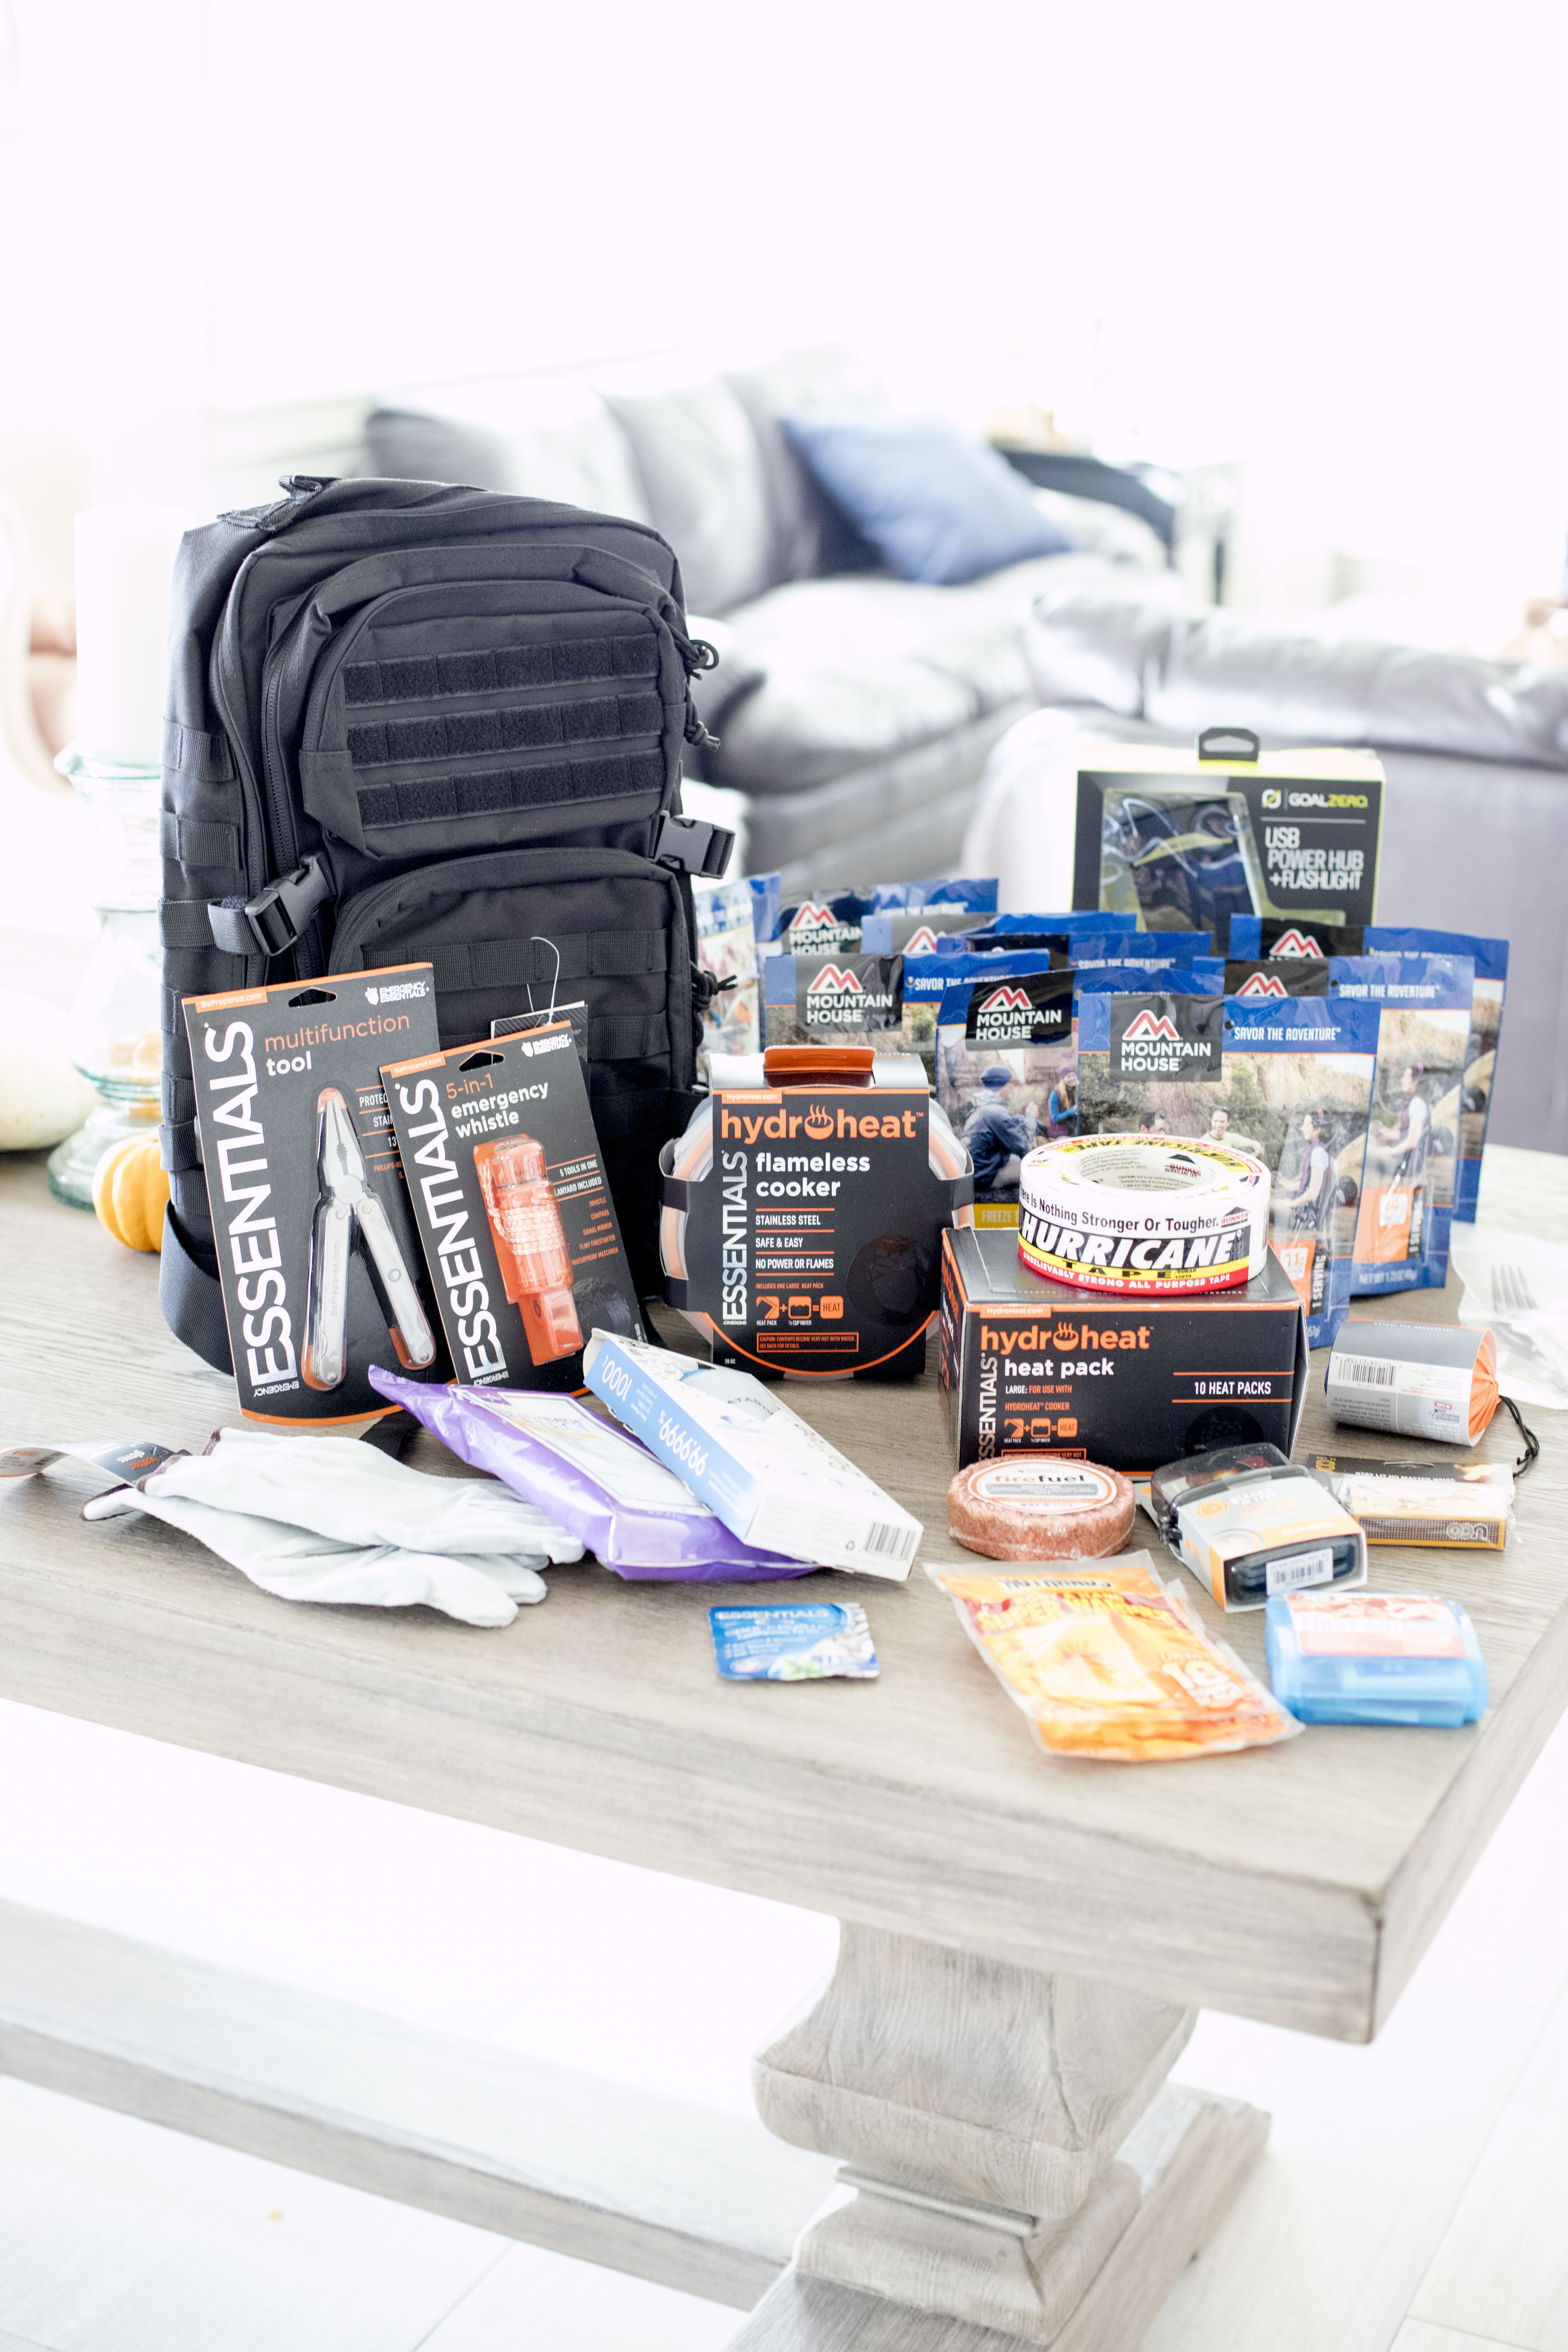 Emergency Essentials to Prepare for Natural Disasters